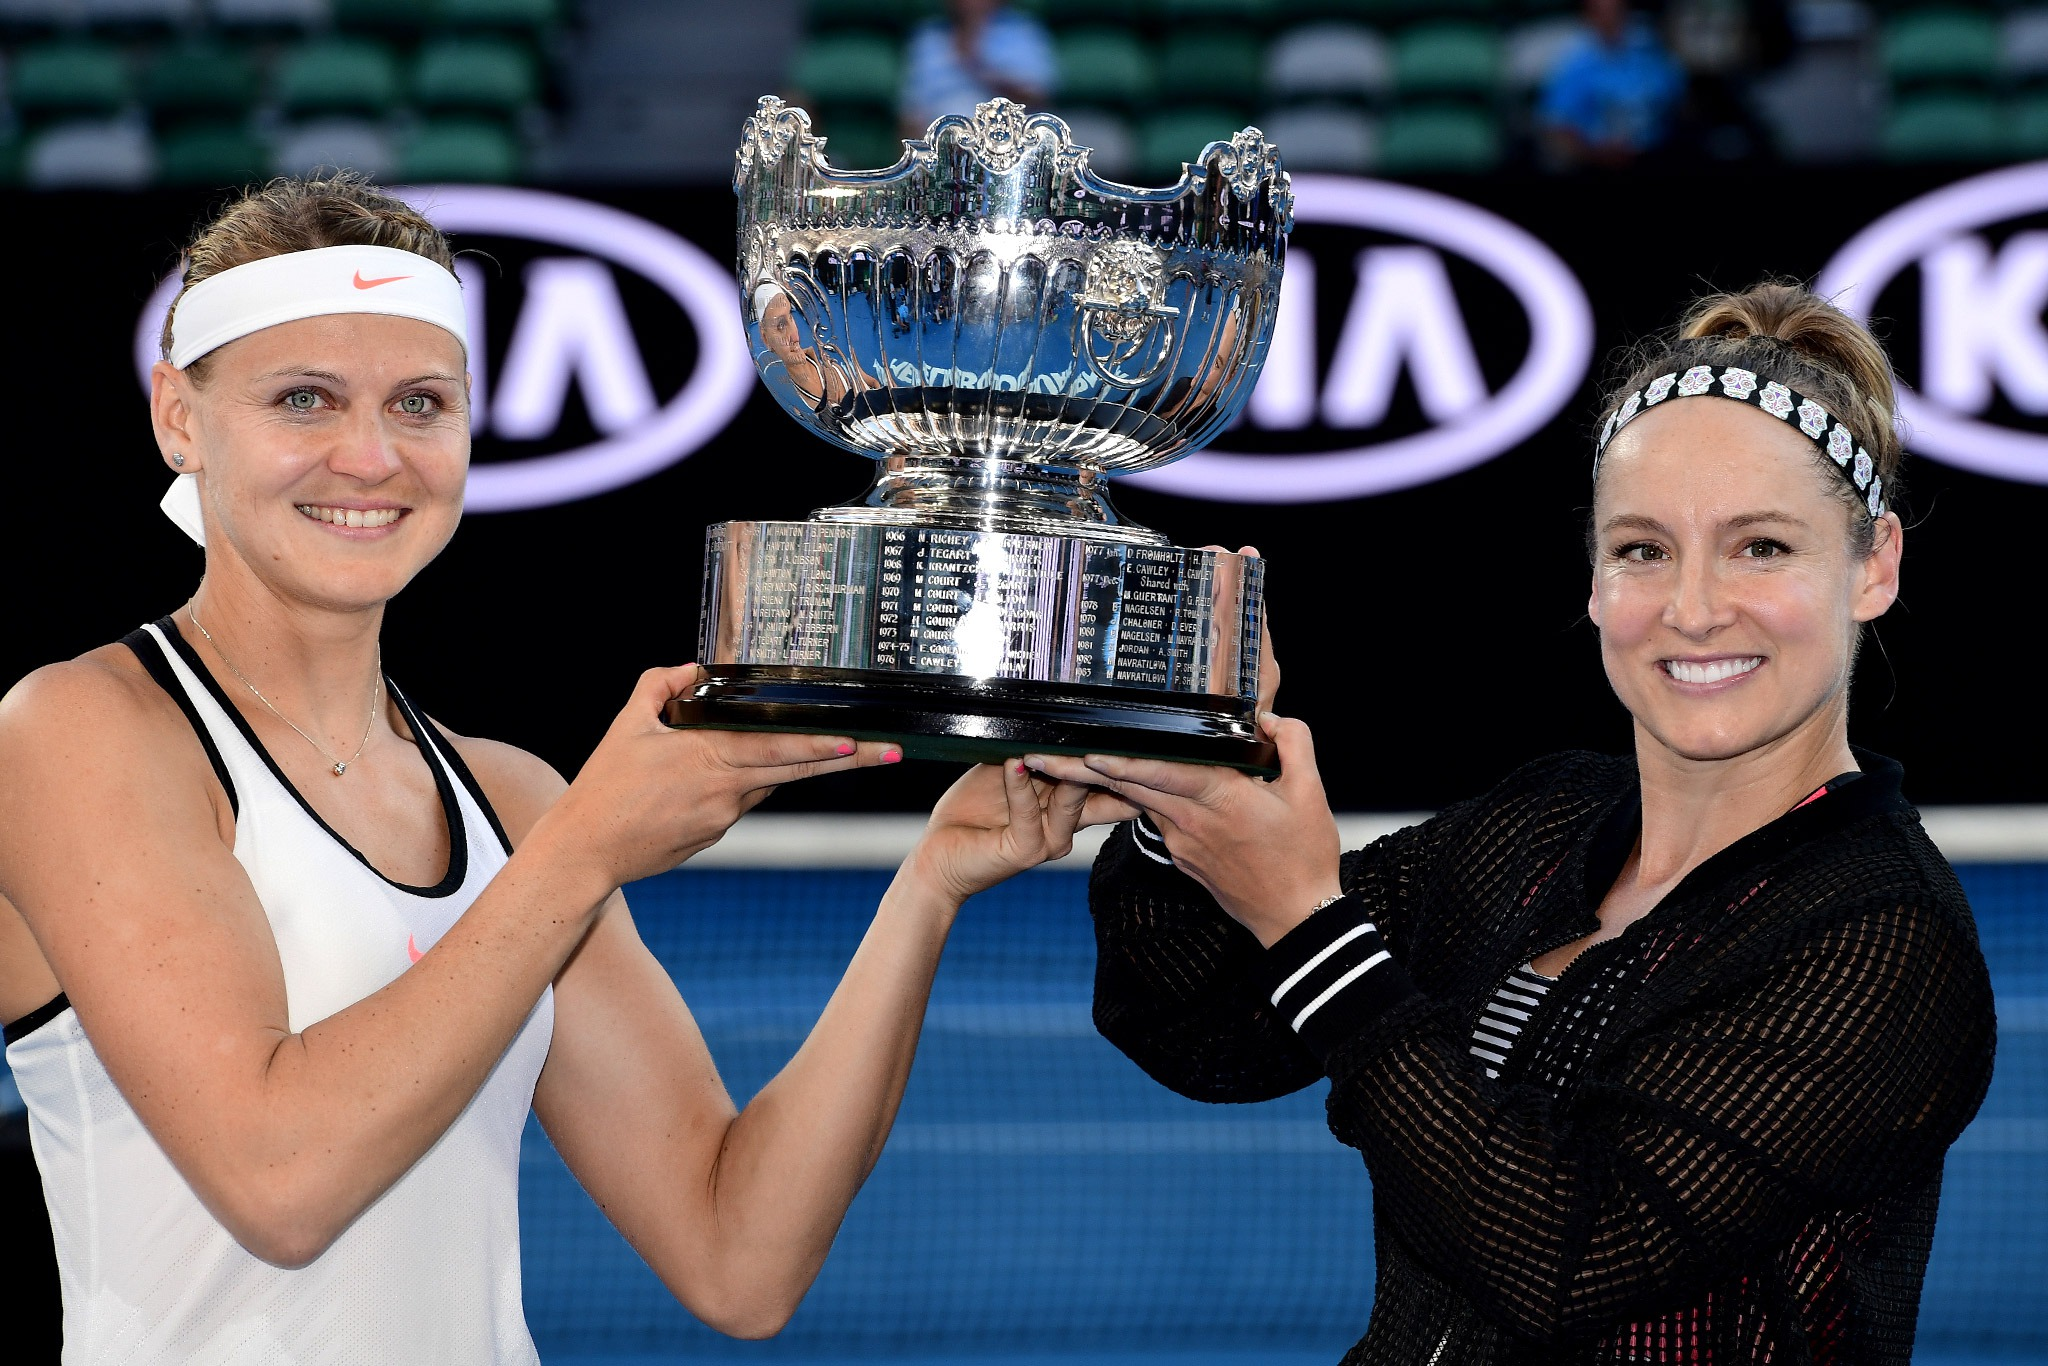 Lucie Safarova and Bethanie Mattek-Sands win the Australian Open